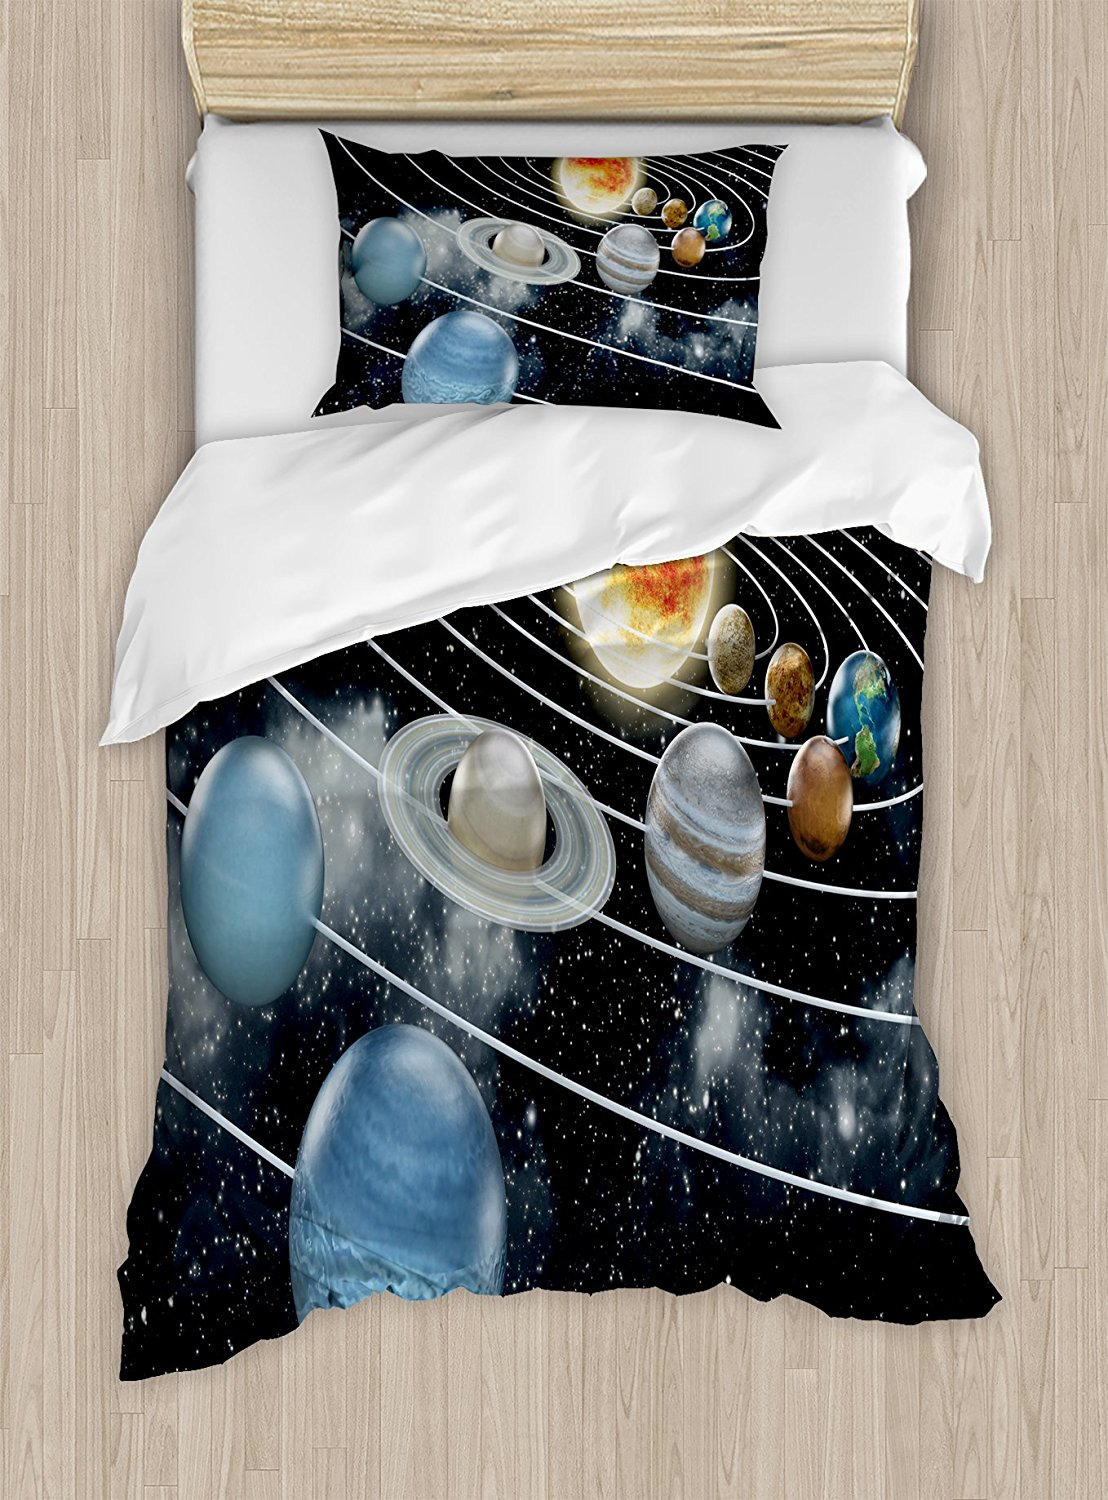 Galaxy Duvet Cover Set Solar System All Eight Planets and the Sun Pluto Jupiter Mars Venus Science Fiction Bedding Set Black